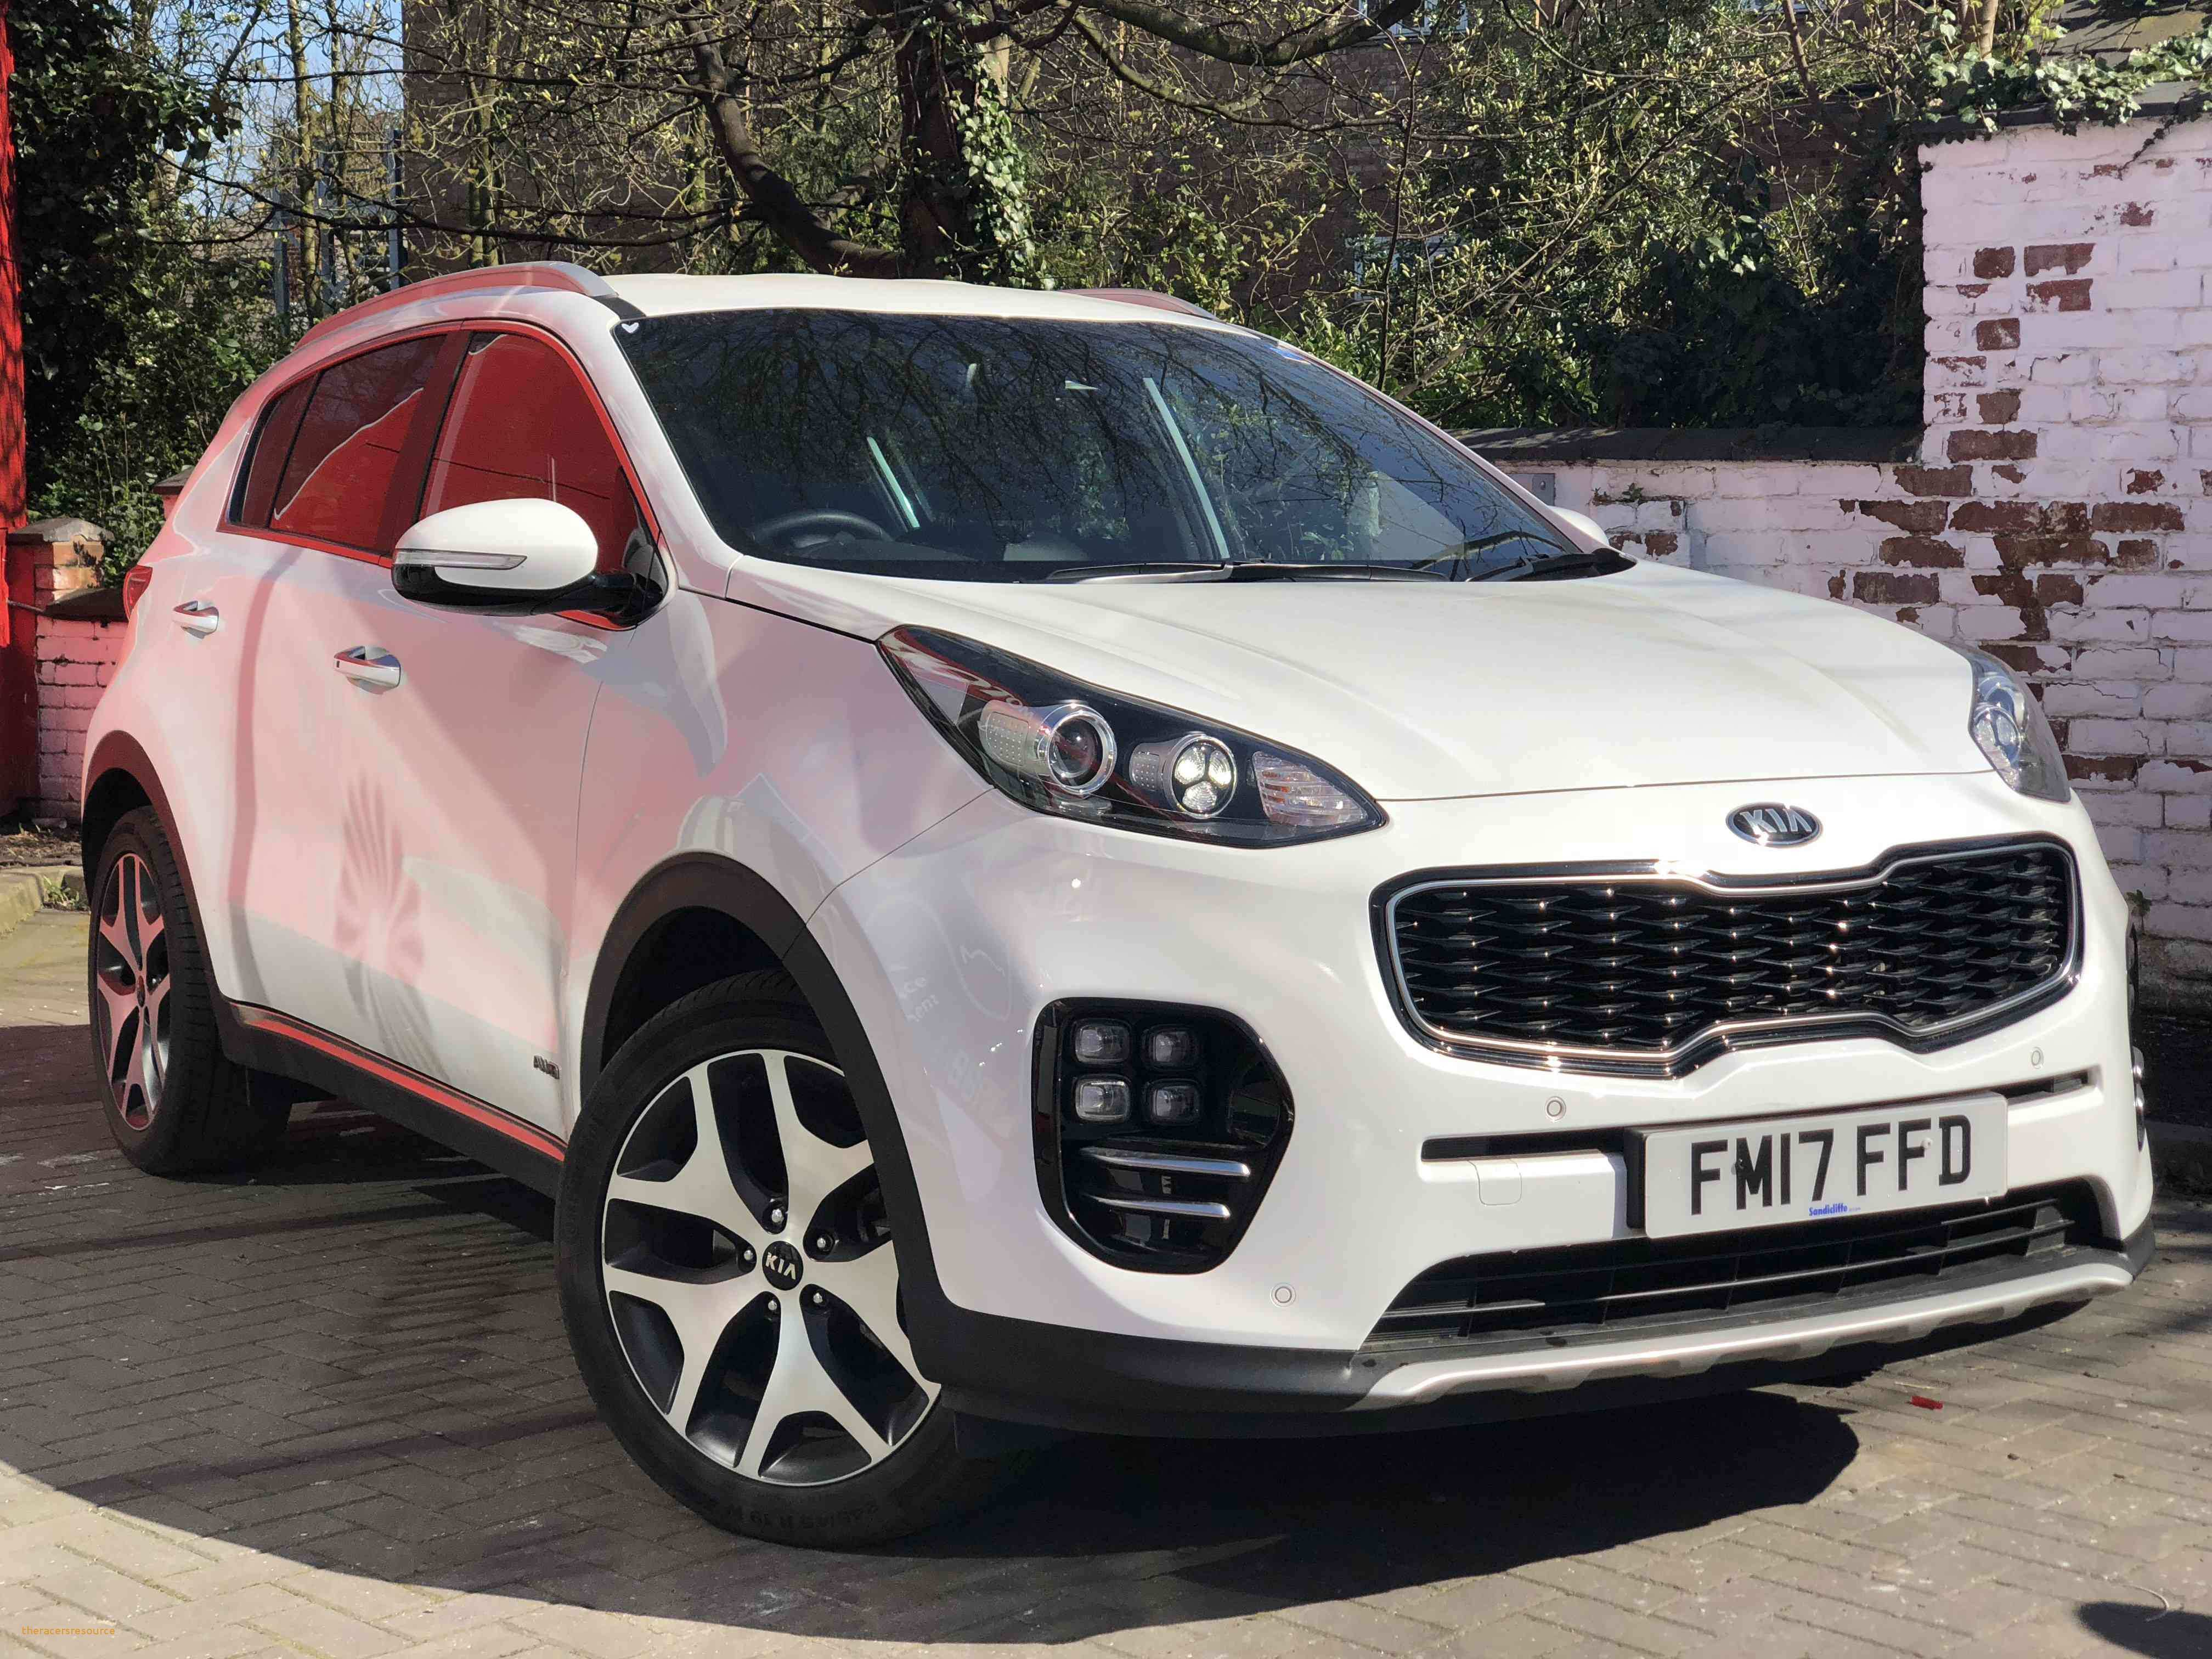 92 The Best 2020 Kia OptimaConcept Release Date And Concept